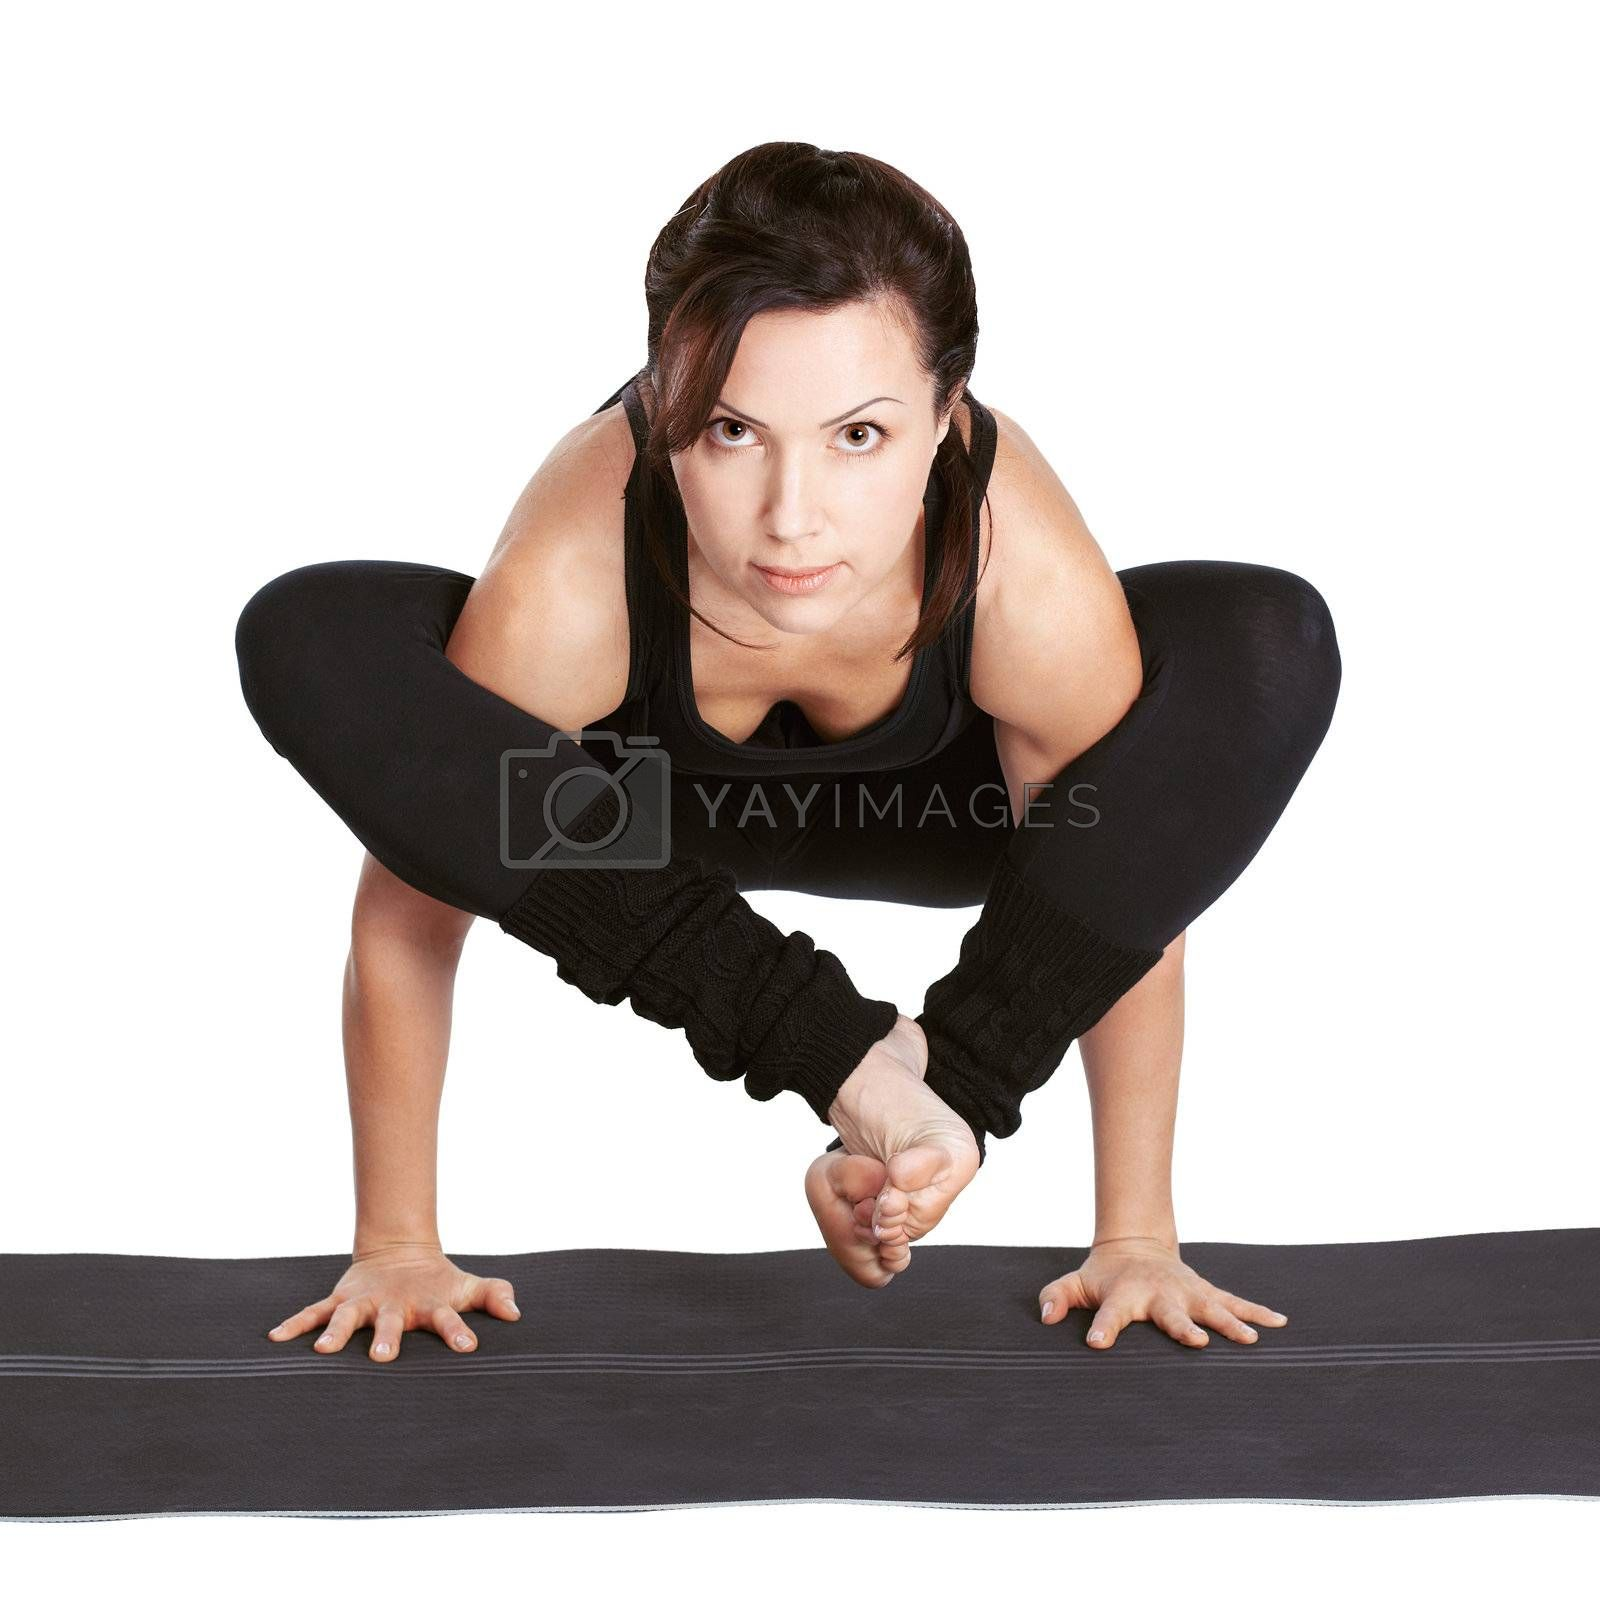 full-length portrait of beautiful woman working out yoga exercise bhujapidasana (shoulder-pressing pose) on fitness mat